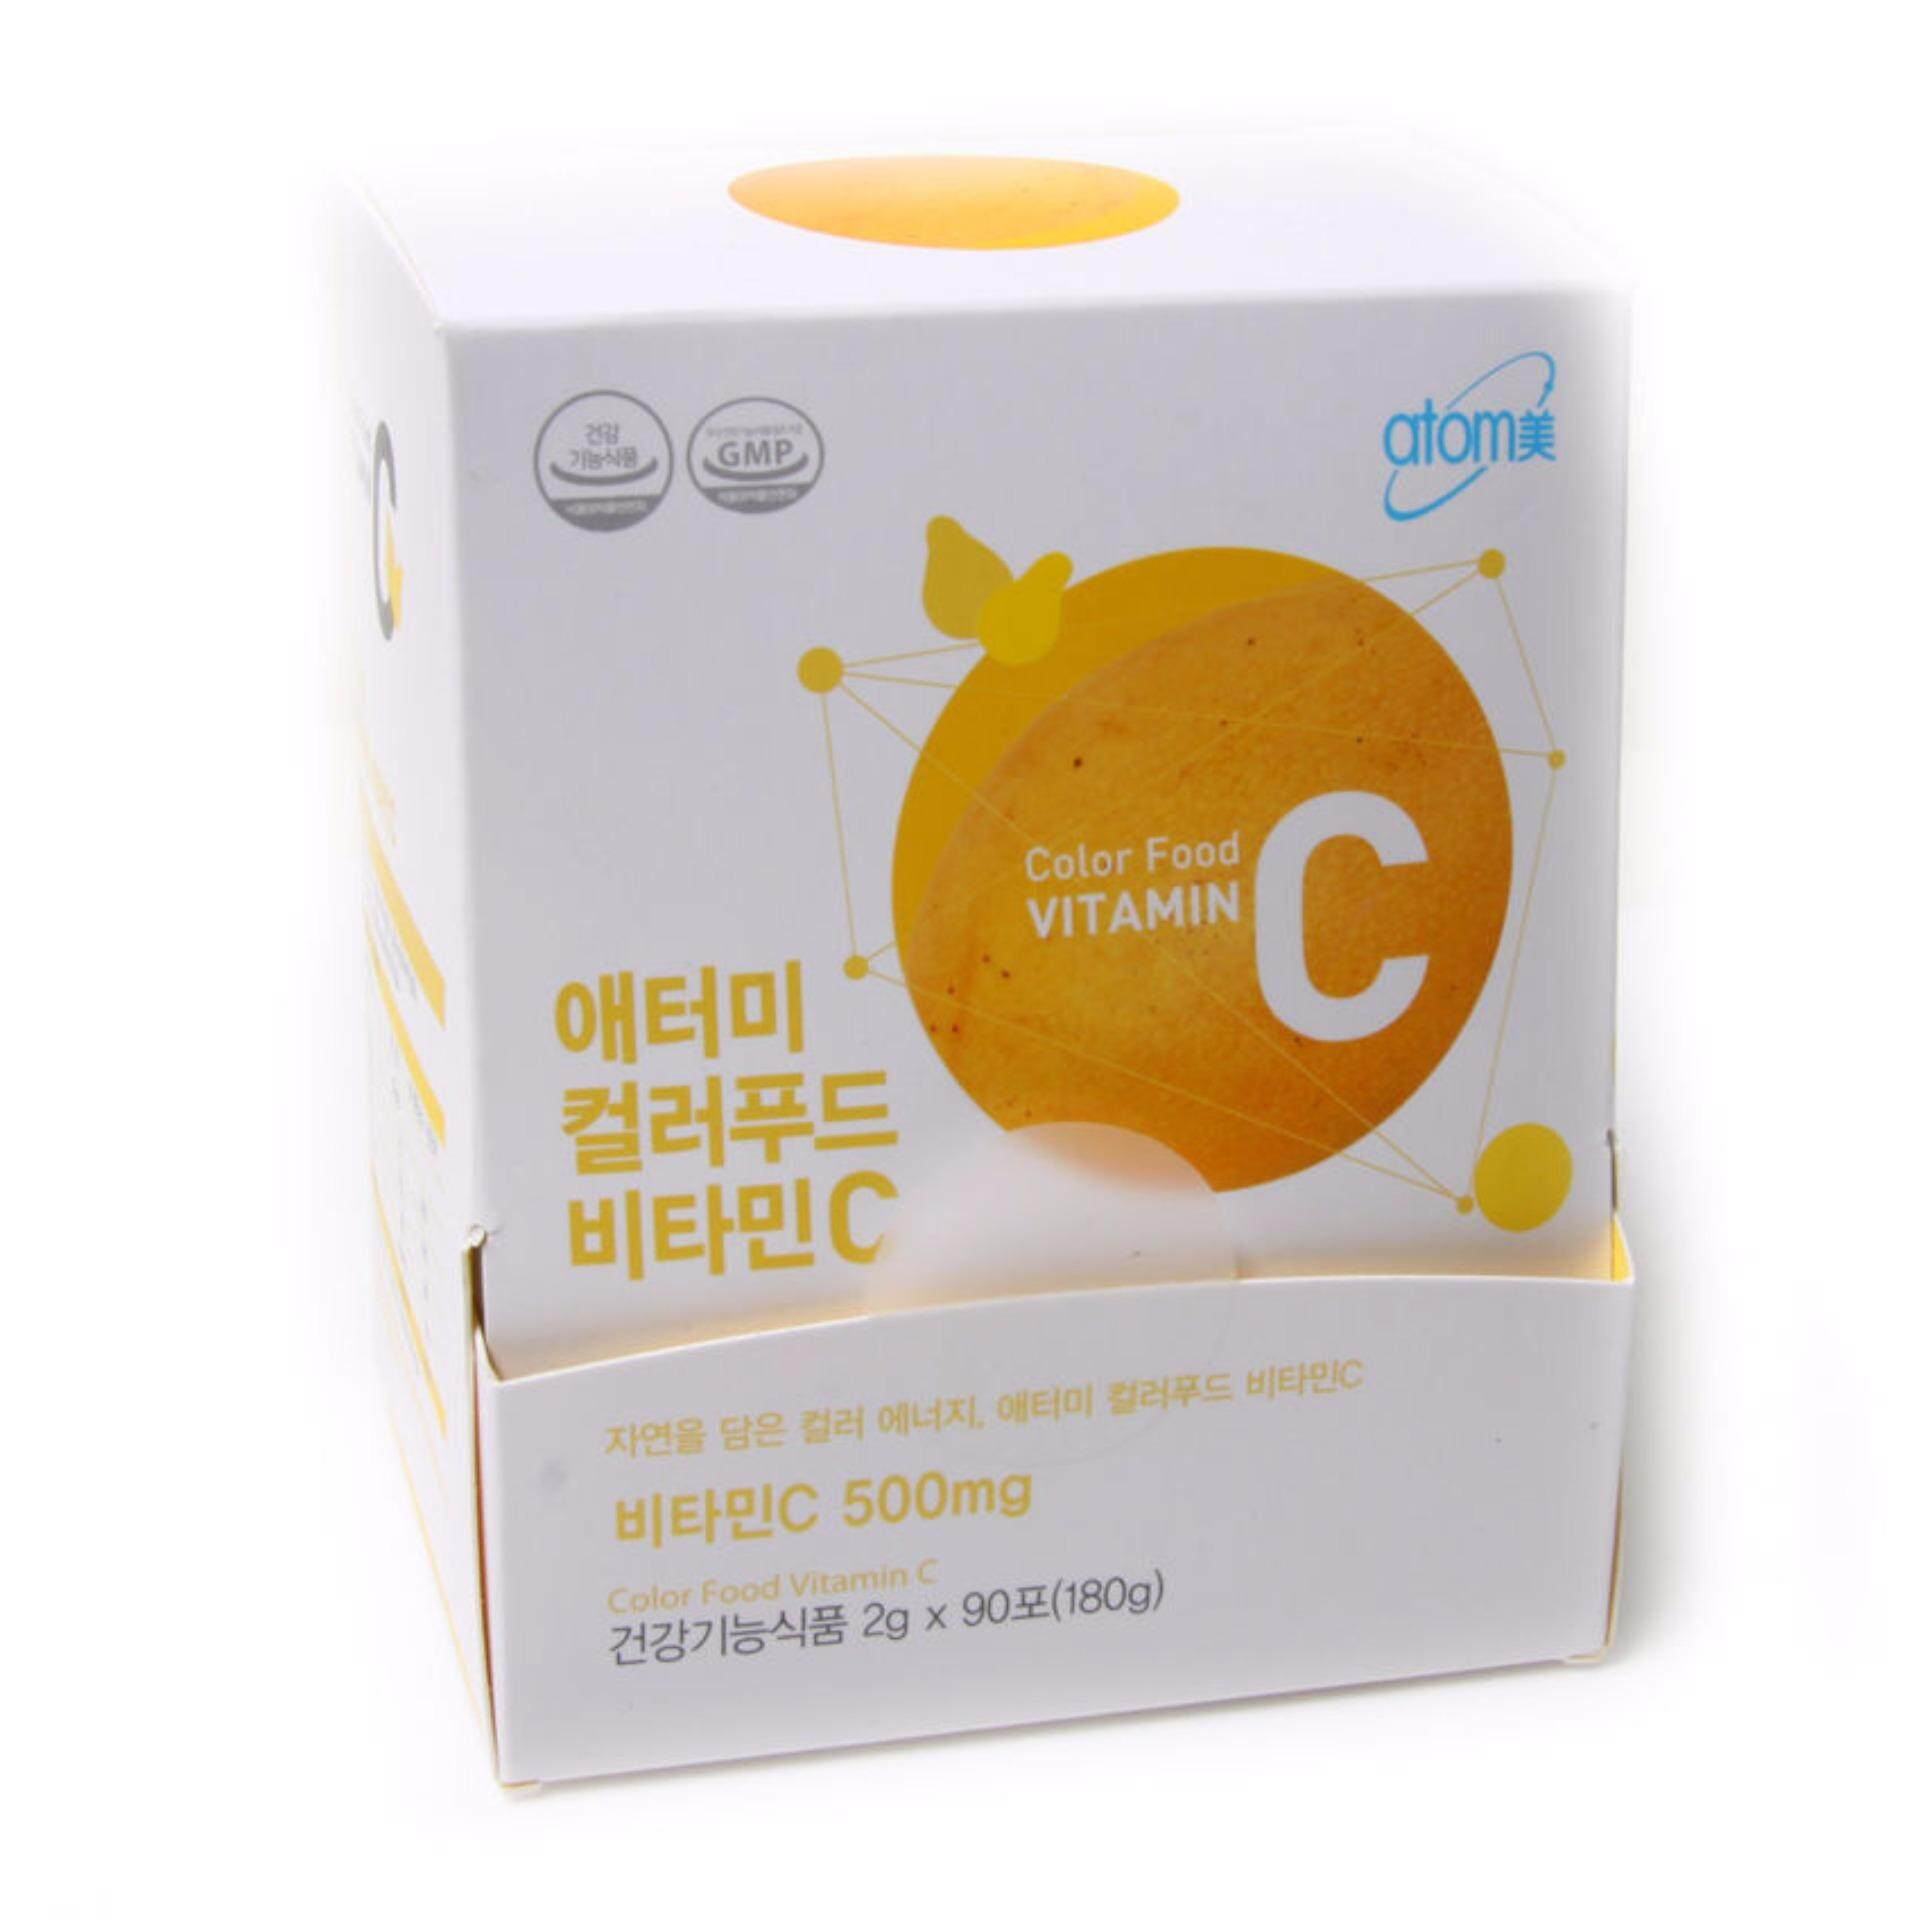 ATOMY Color Food Vitamin C (Set of 2) 500mg 2g x 90 packets (180g) Sticks